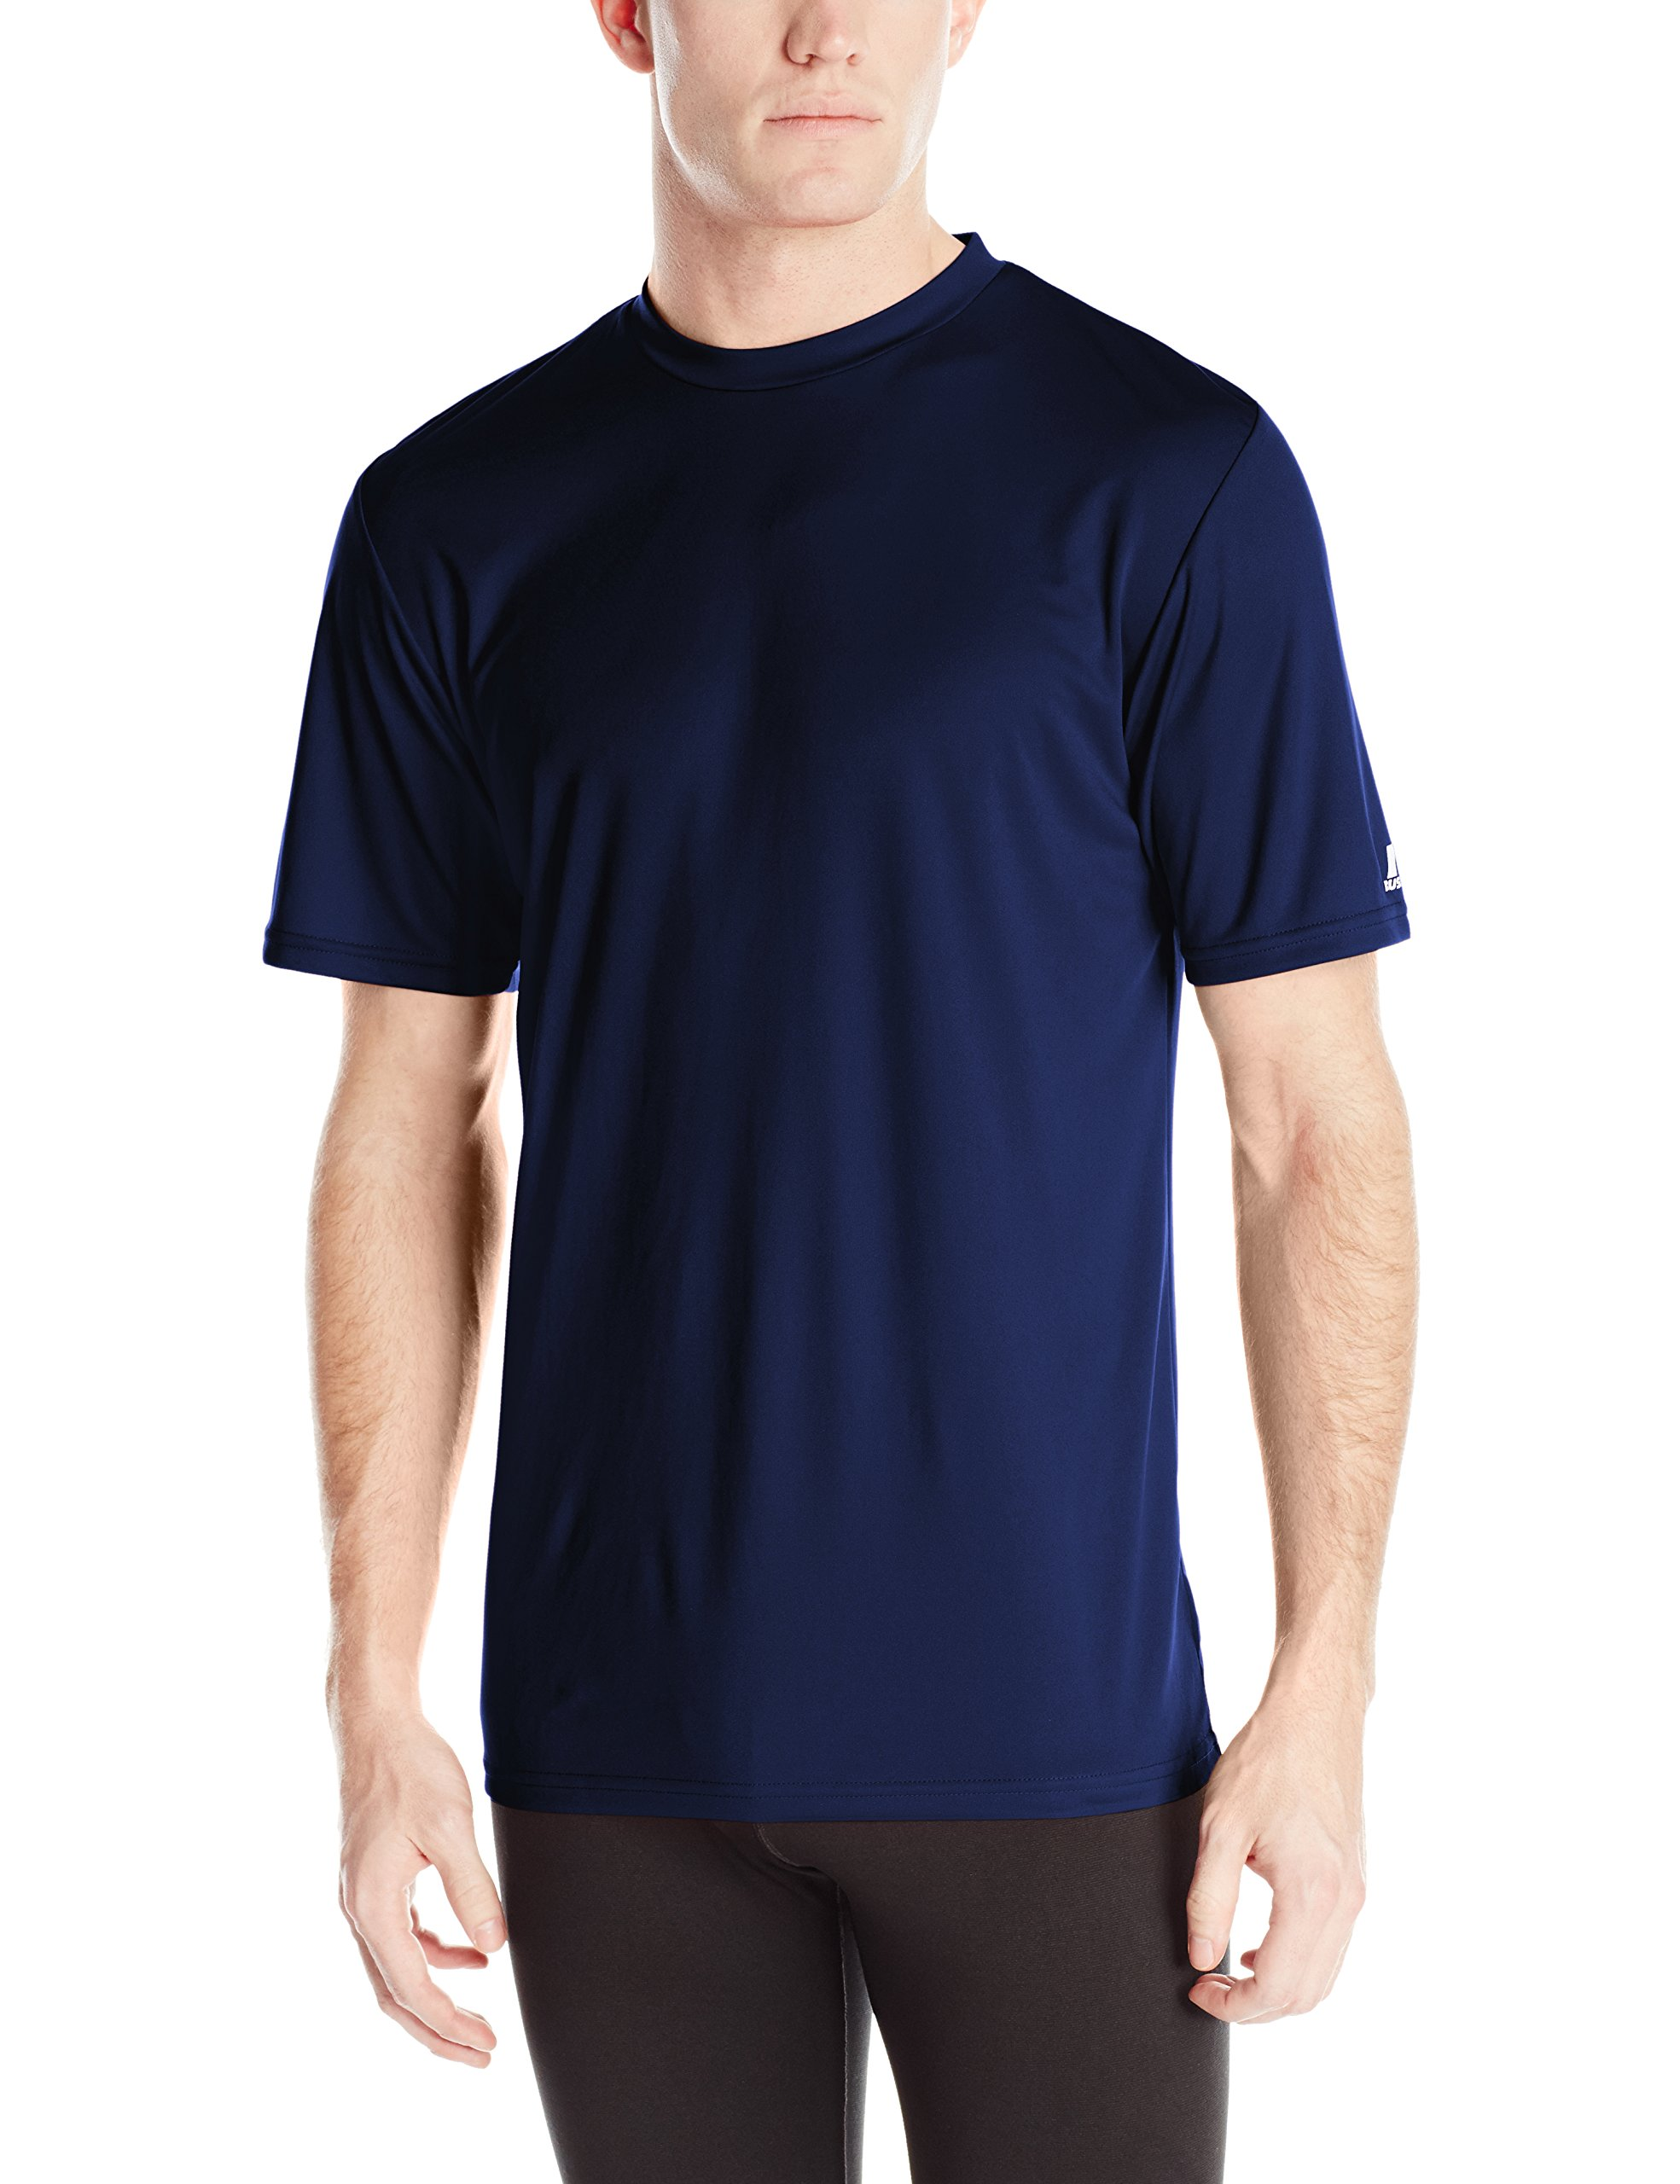 Russell Athletic Men's Performance T-Shirt, Navy, 3X-Large by Russell Athletic